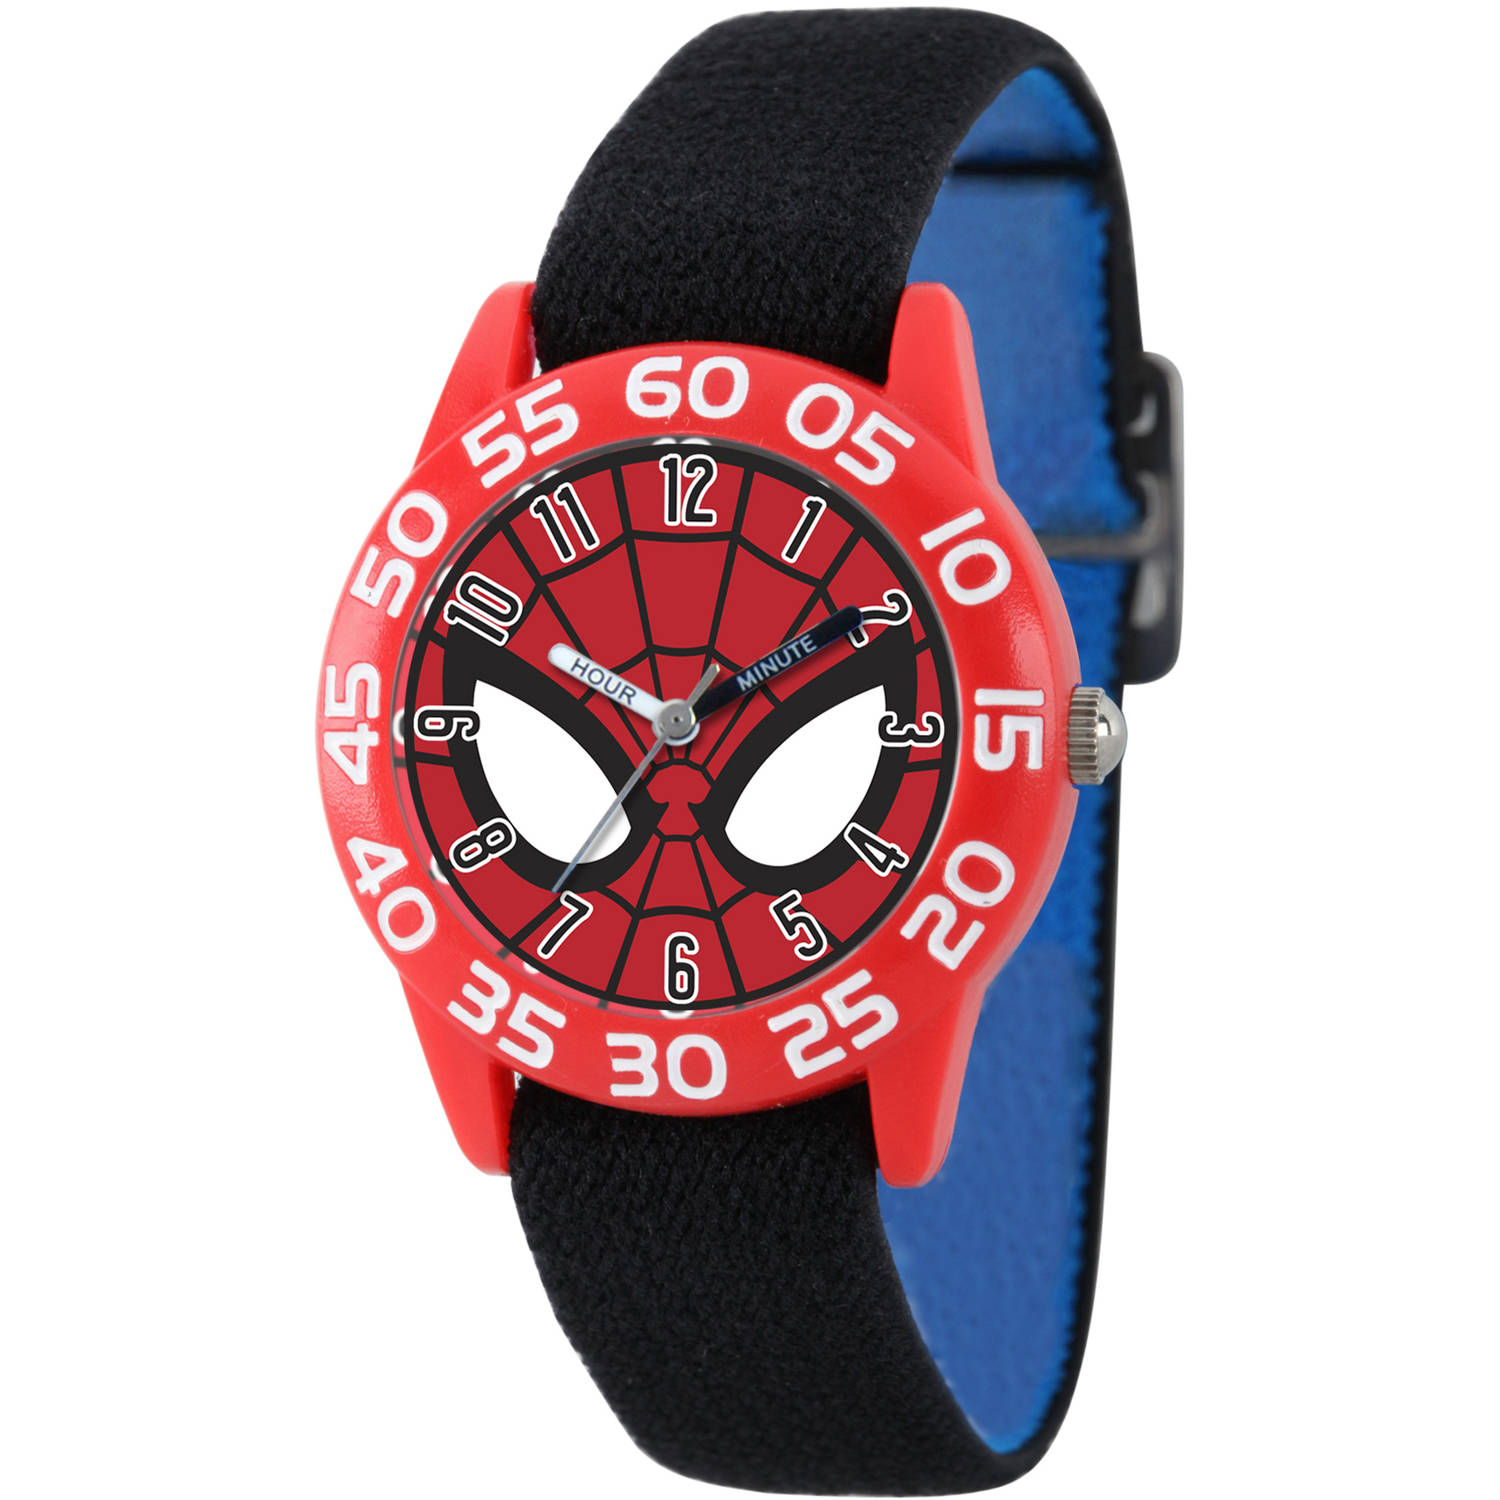 Marvel's Ultimate Spider-Man Boys' Red Plastic Time Teacher Watch, Reversible Black and Blue Nylon Strap